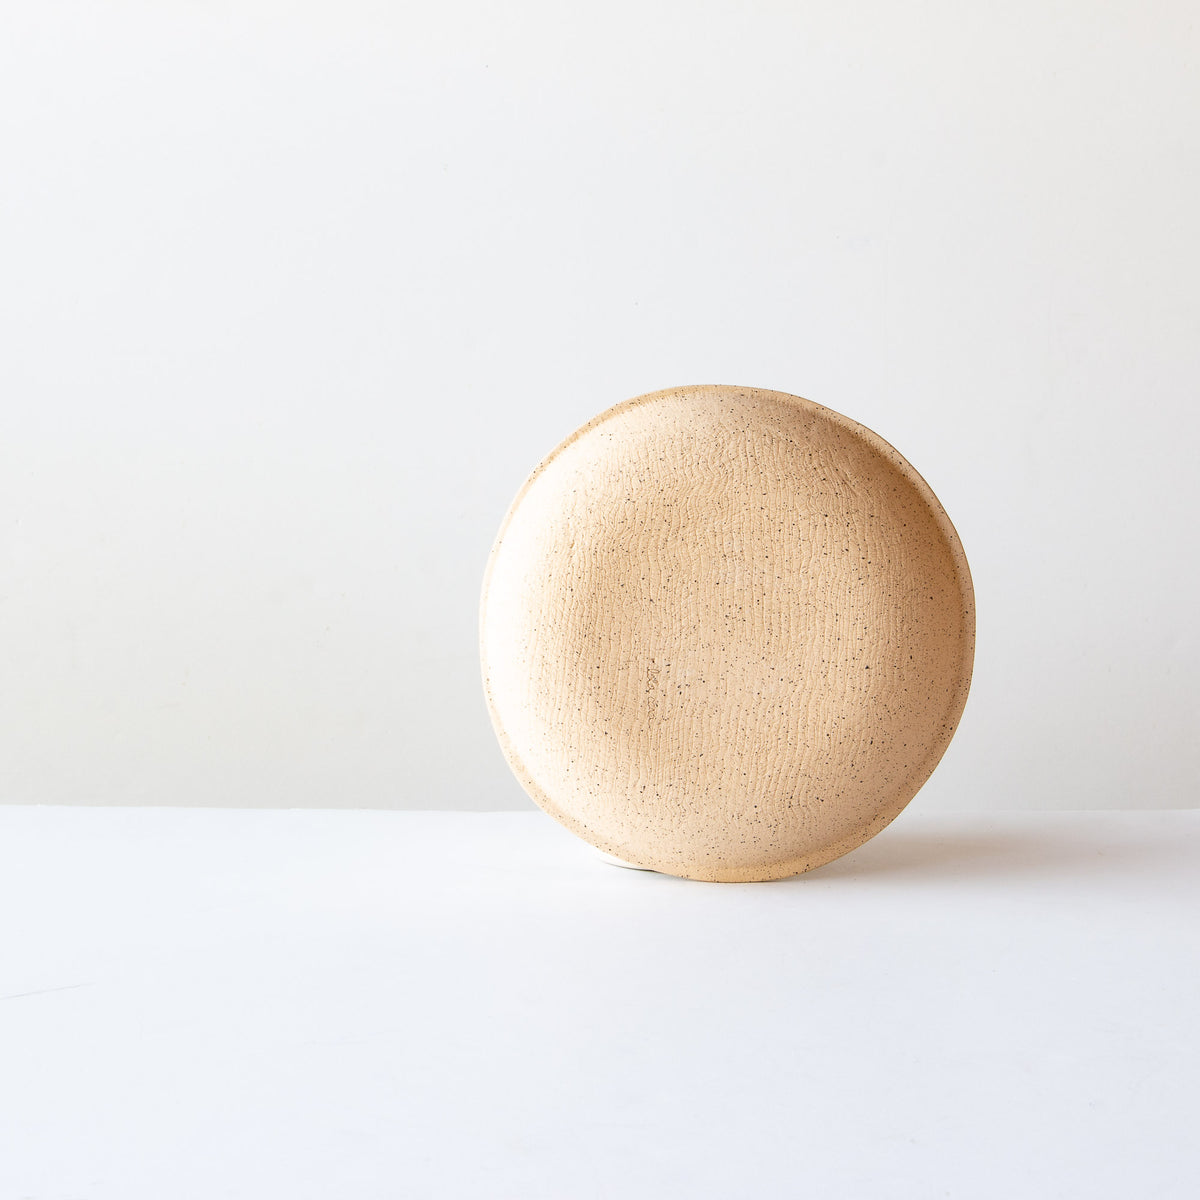 Back View - Small Freckled Pasta Bowl - Handmade in Glazed Stoneware - Sold by Chic & Basta